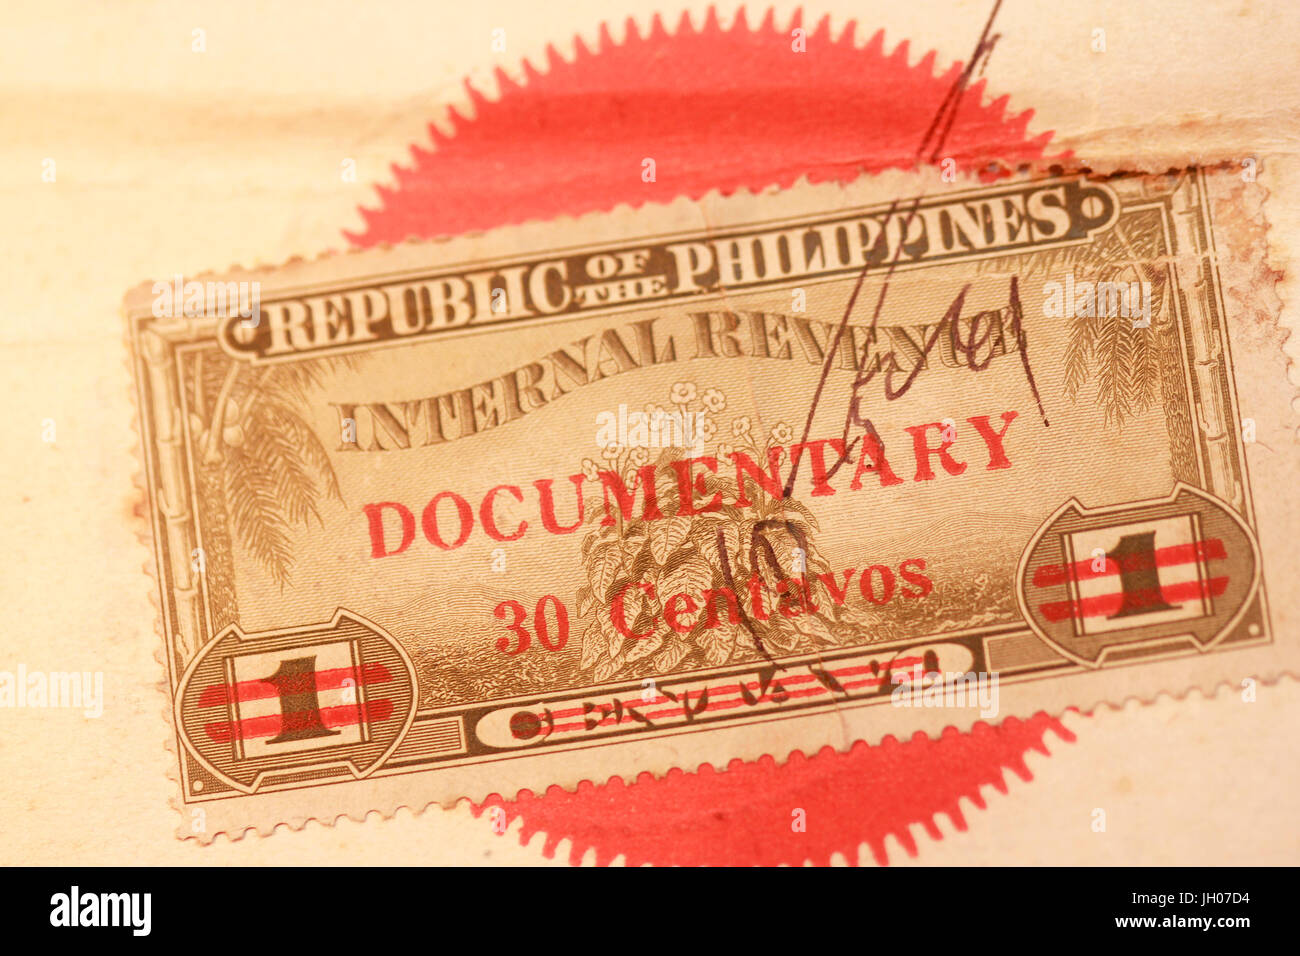 Vintage Documentary Stamp Republic Of The Philippines Internal Revenue